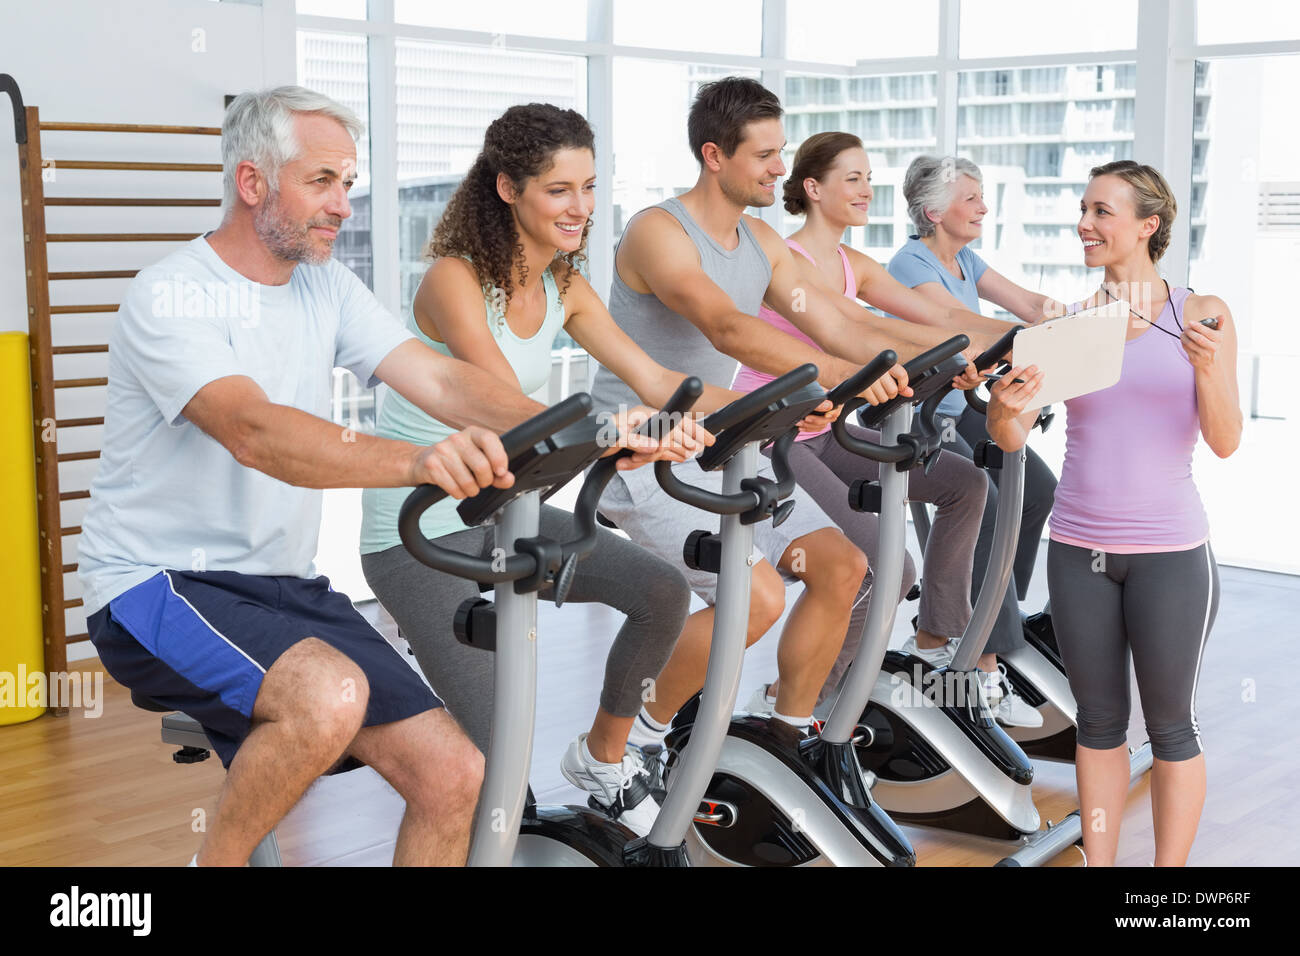 Trainer besides people working out at spinning class - Stock Image